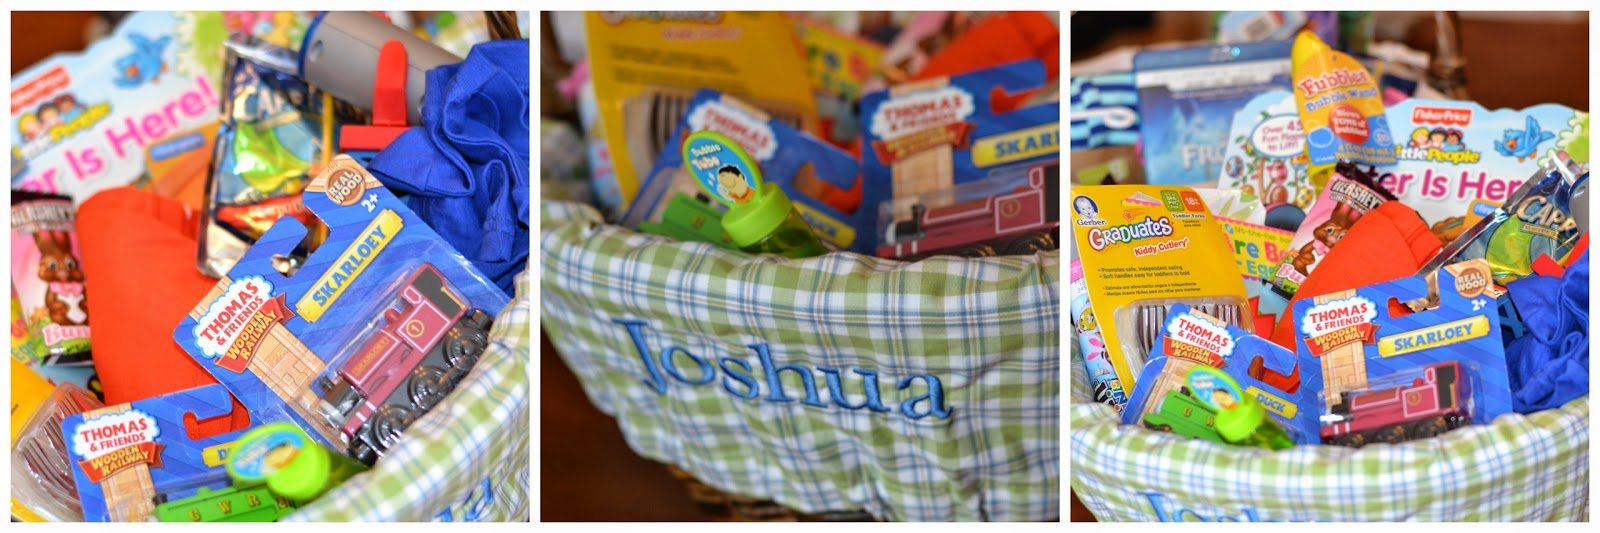 Easter basket ideas for any kid happily a housewife we have the sabrina basket and i did it in natural because i figured white would show wear over the years there are so many adorable liners to go with them negle Images